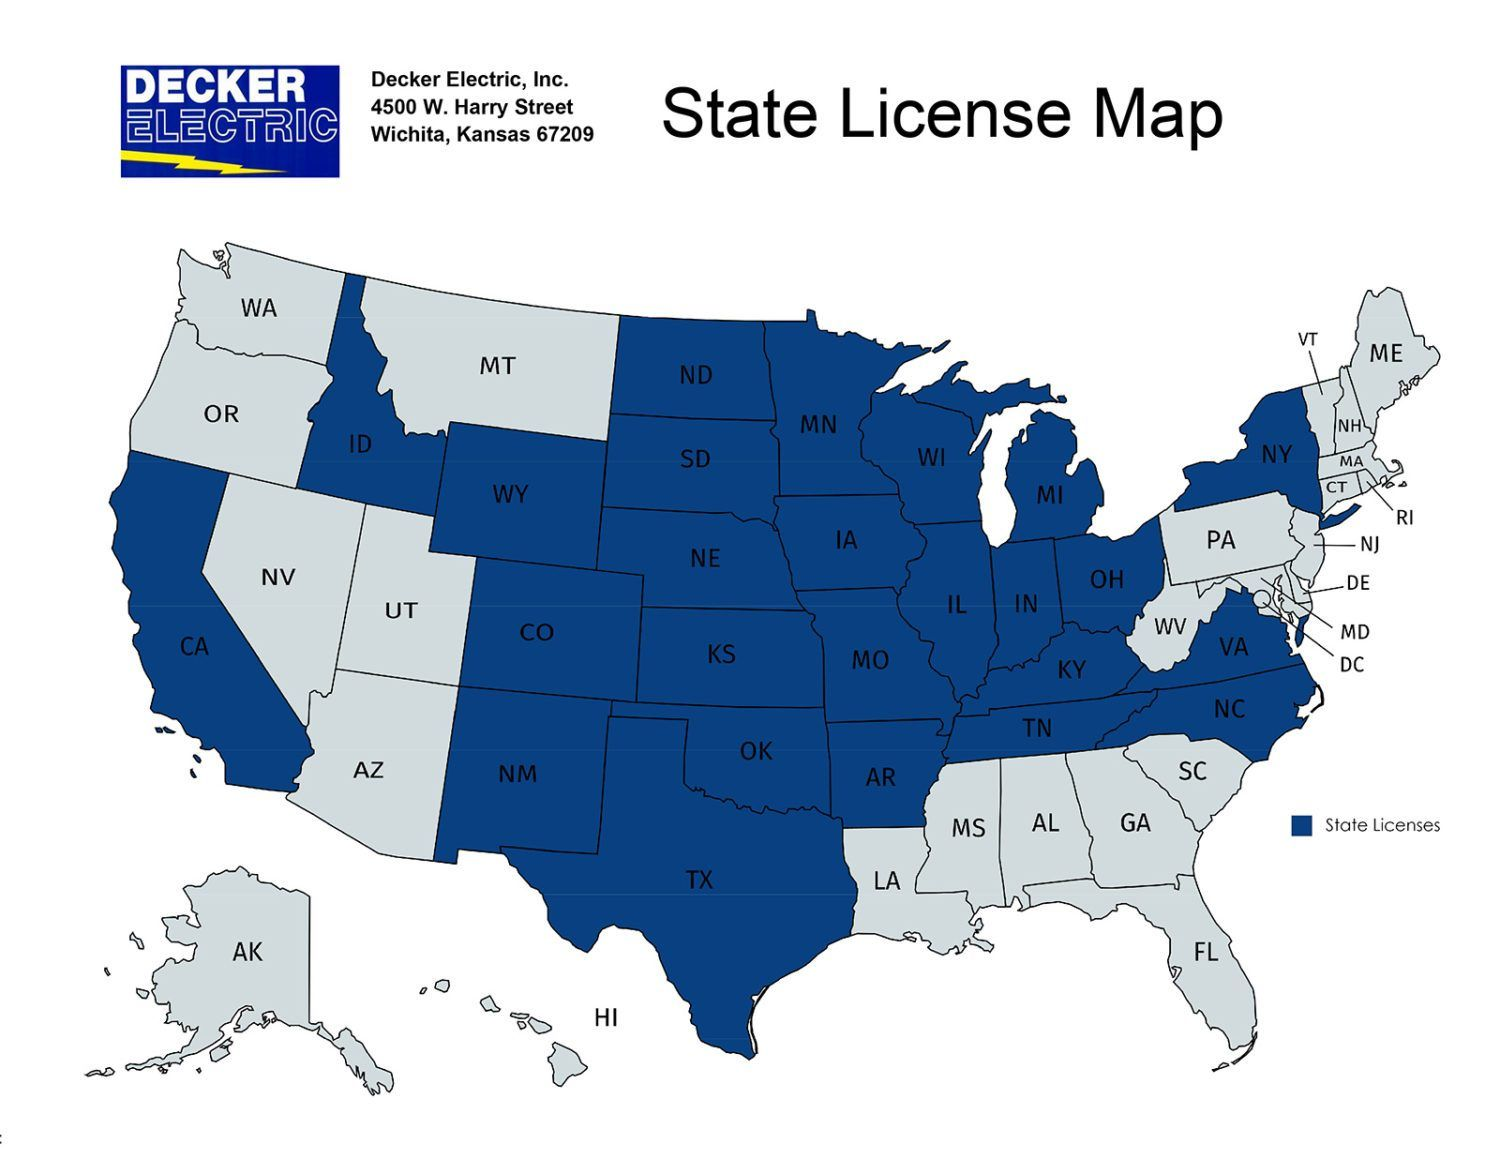 graphic image of US map showing states where Decker Electric is licensed